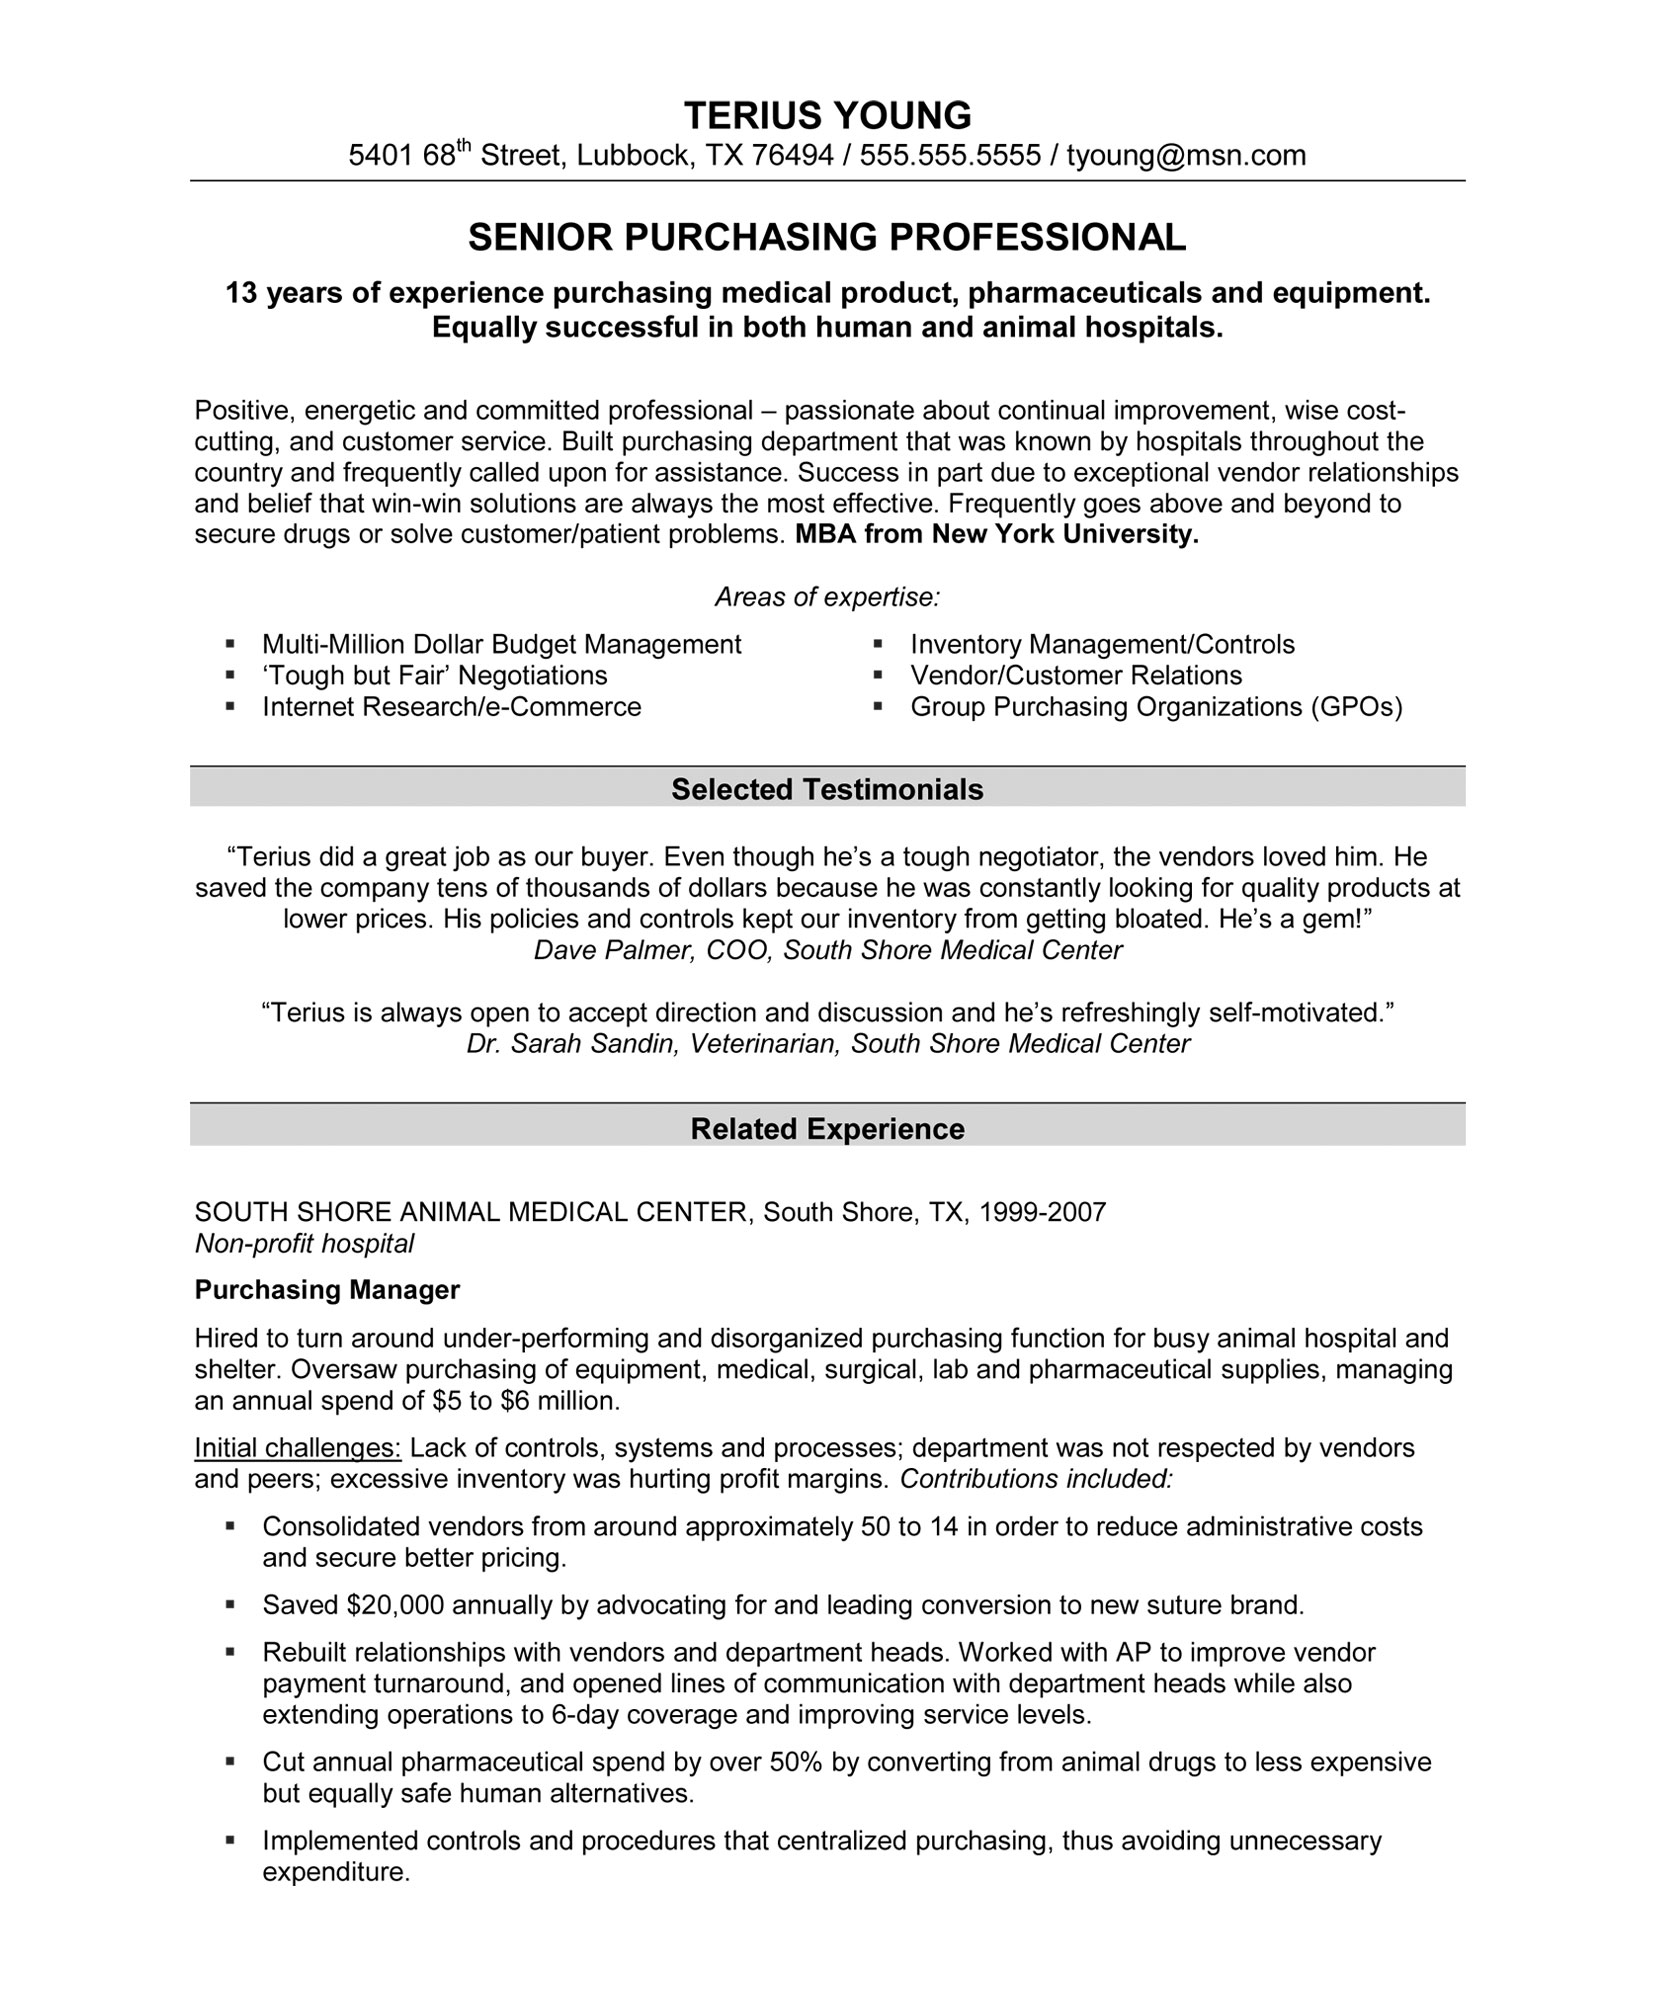 resume Professional Headline Resume how to make over your resume real world example 2 blue sky you